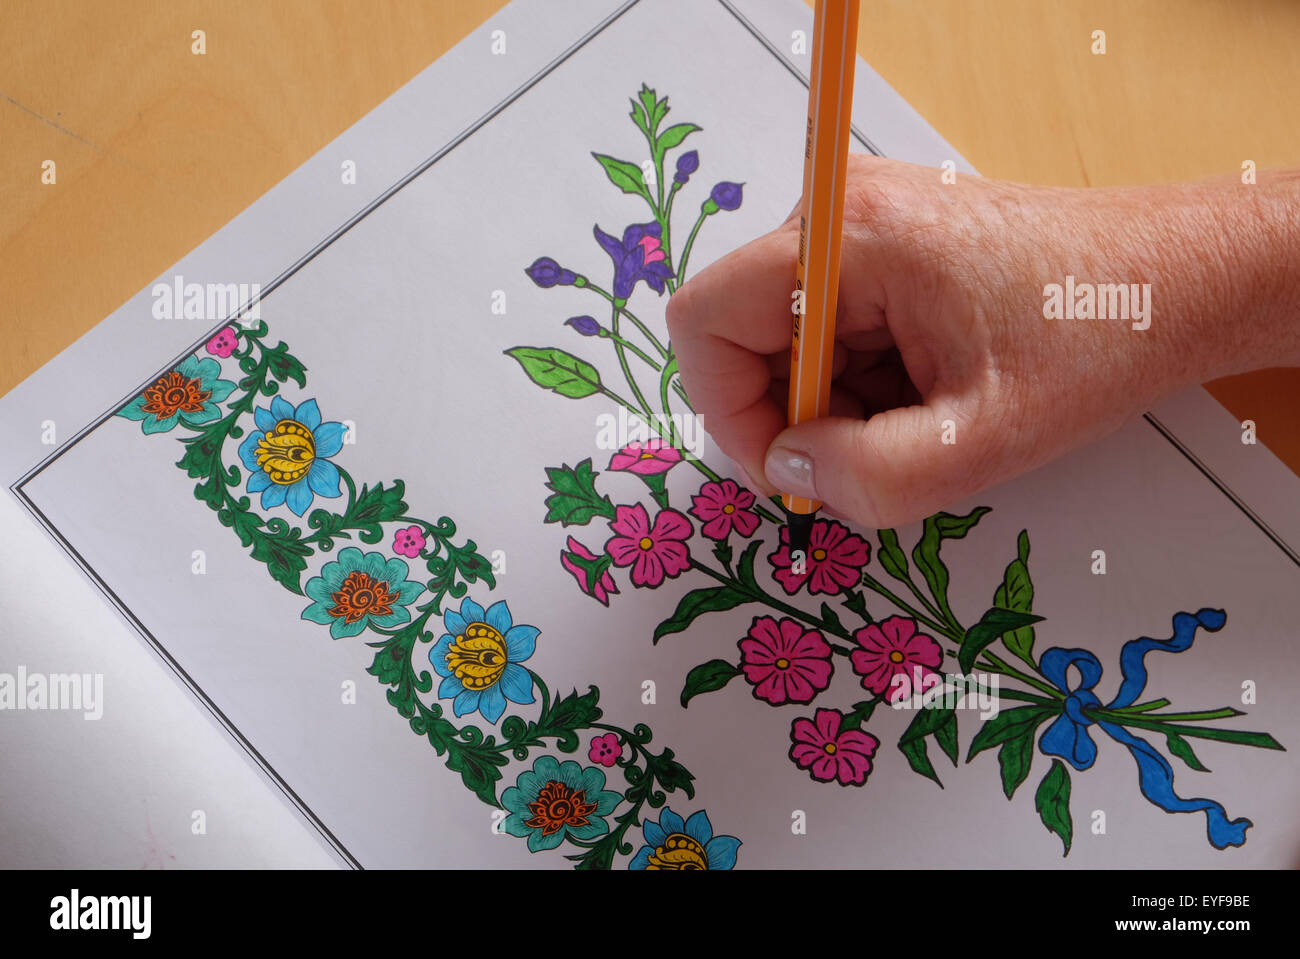 Colouring in book free - An Adult Woman Colouring In A Vintage Design Colouring In Book A New Trend In Relaxation For Adults